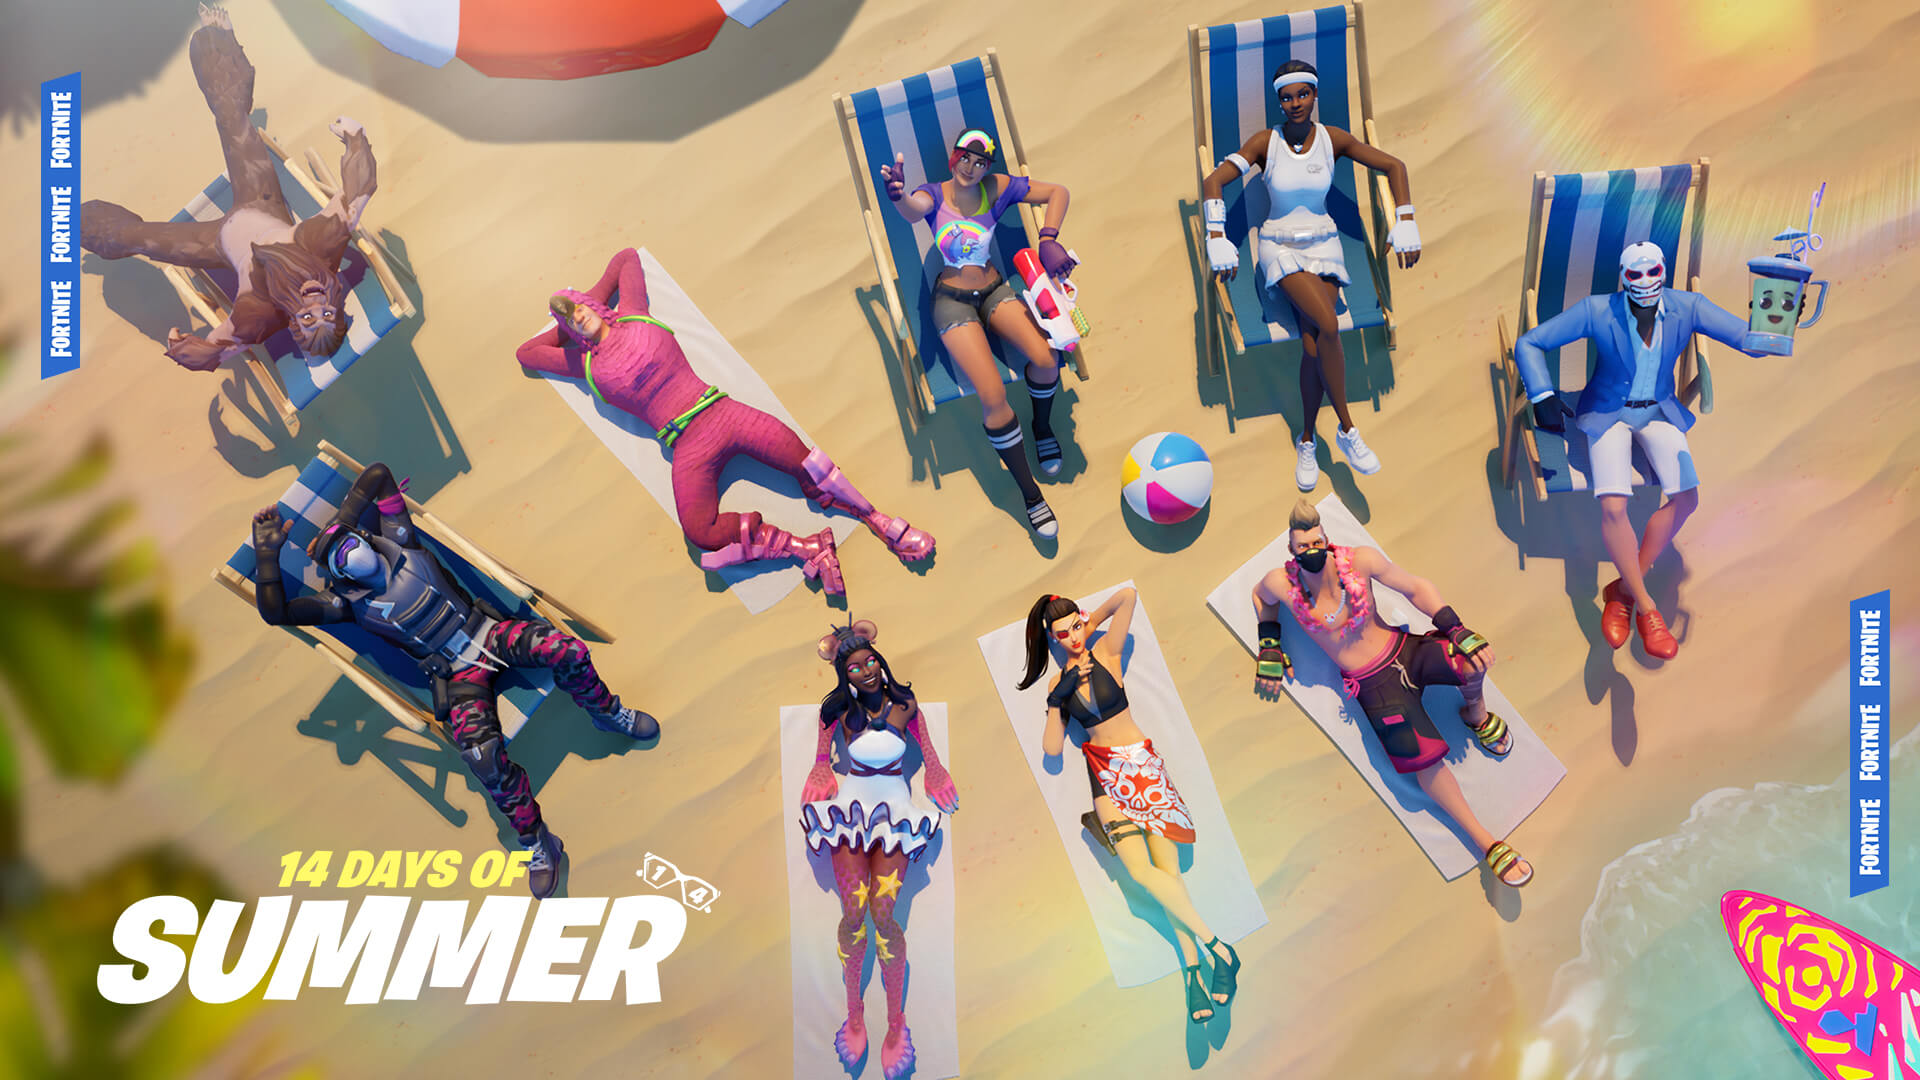 Fortnite Offers New LTMs Daily With 14 Days Of Summer